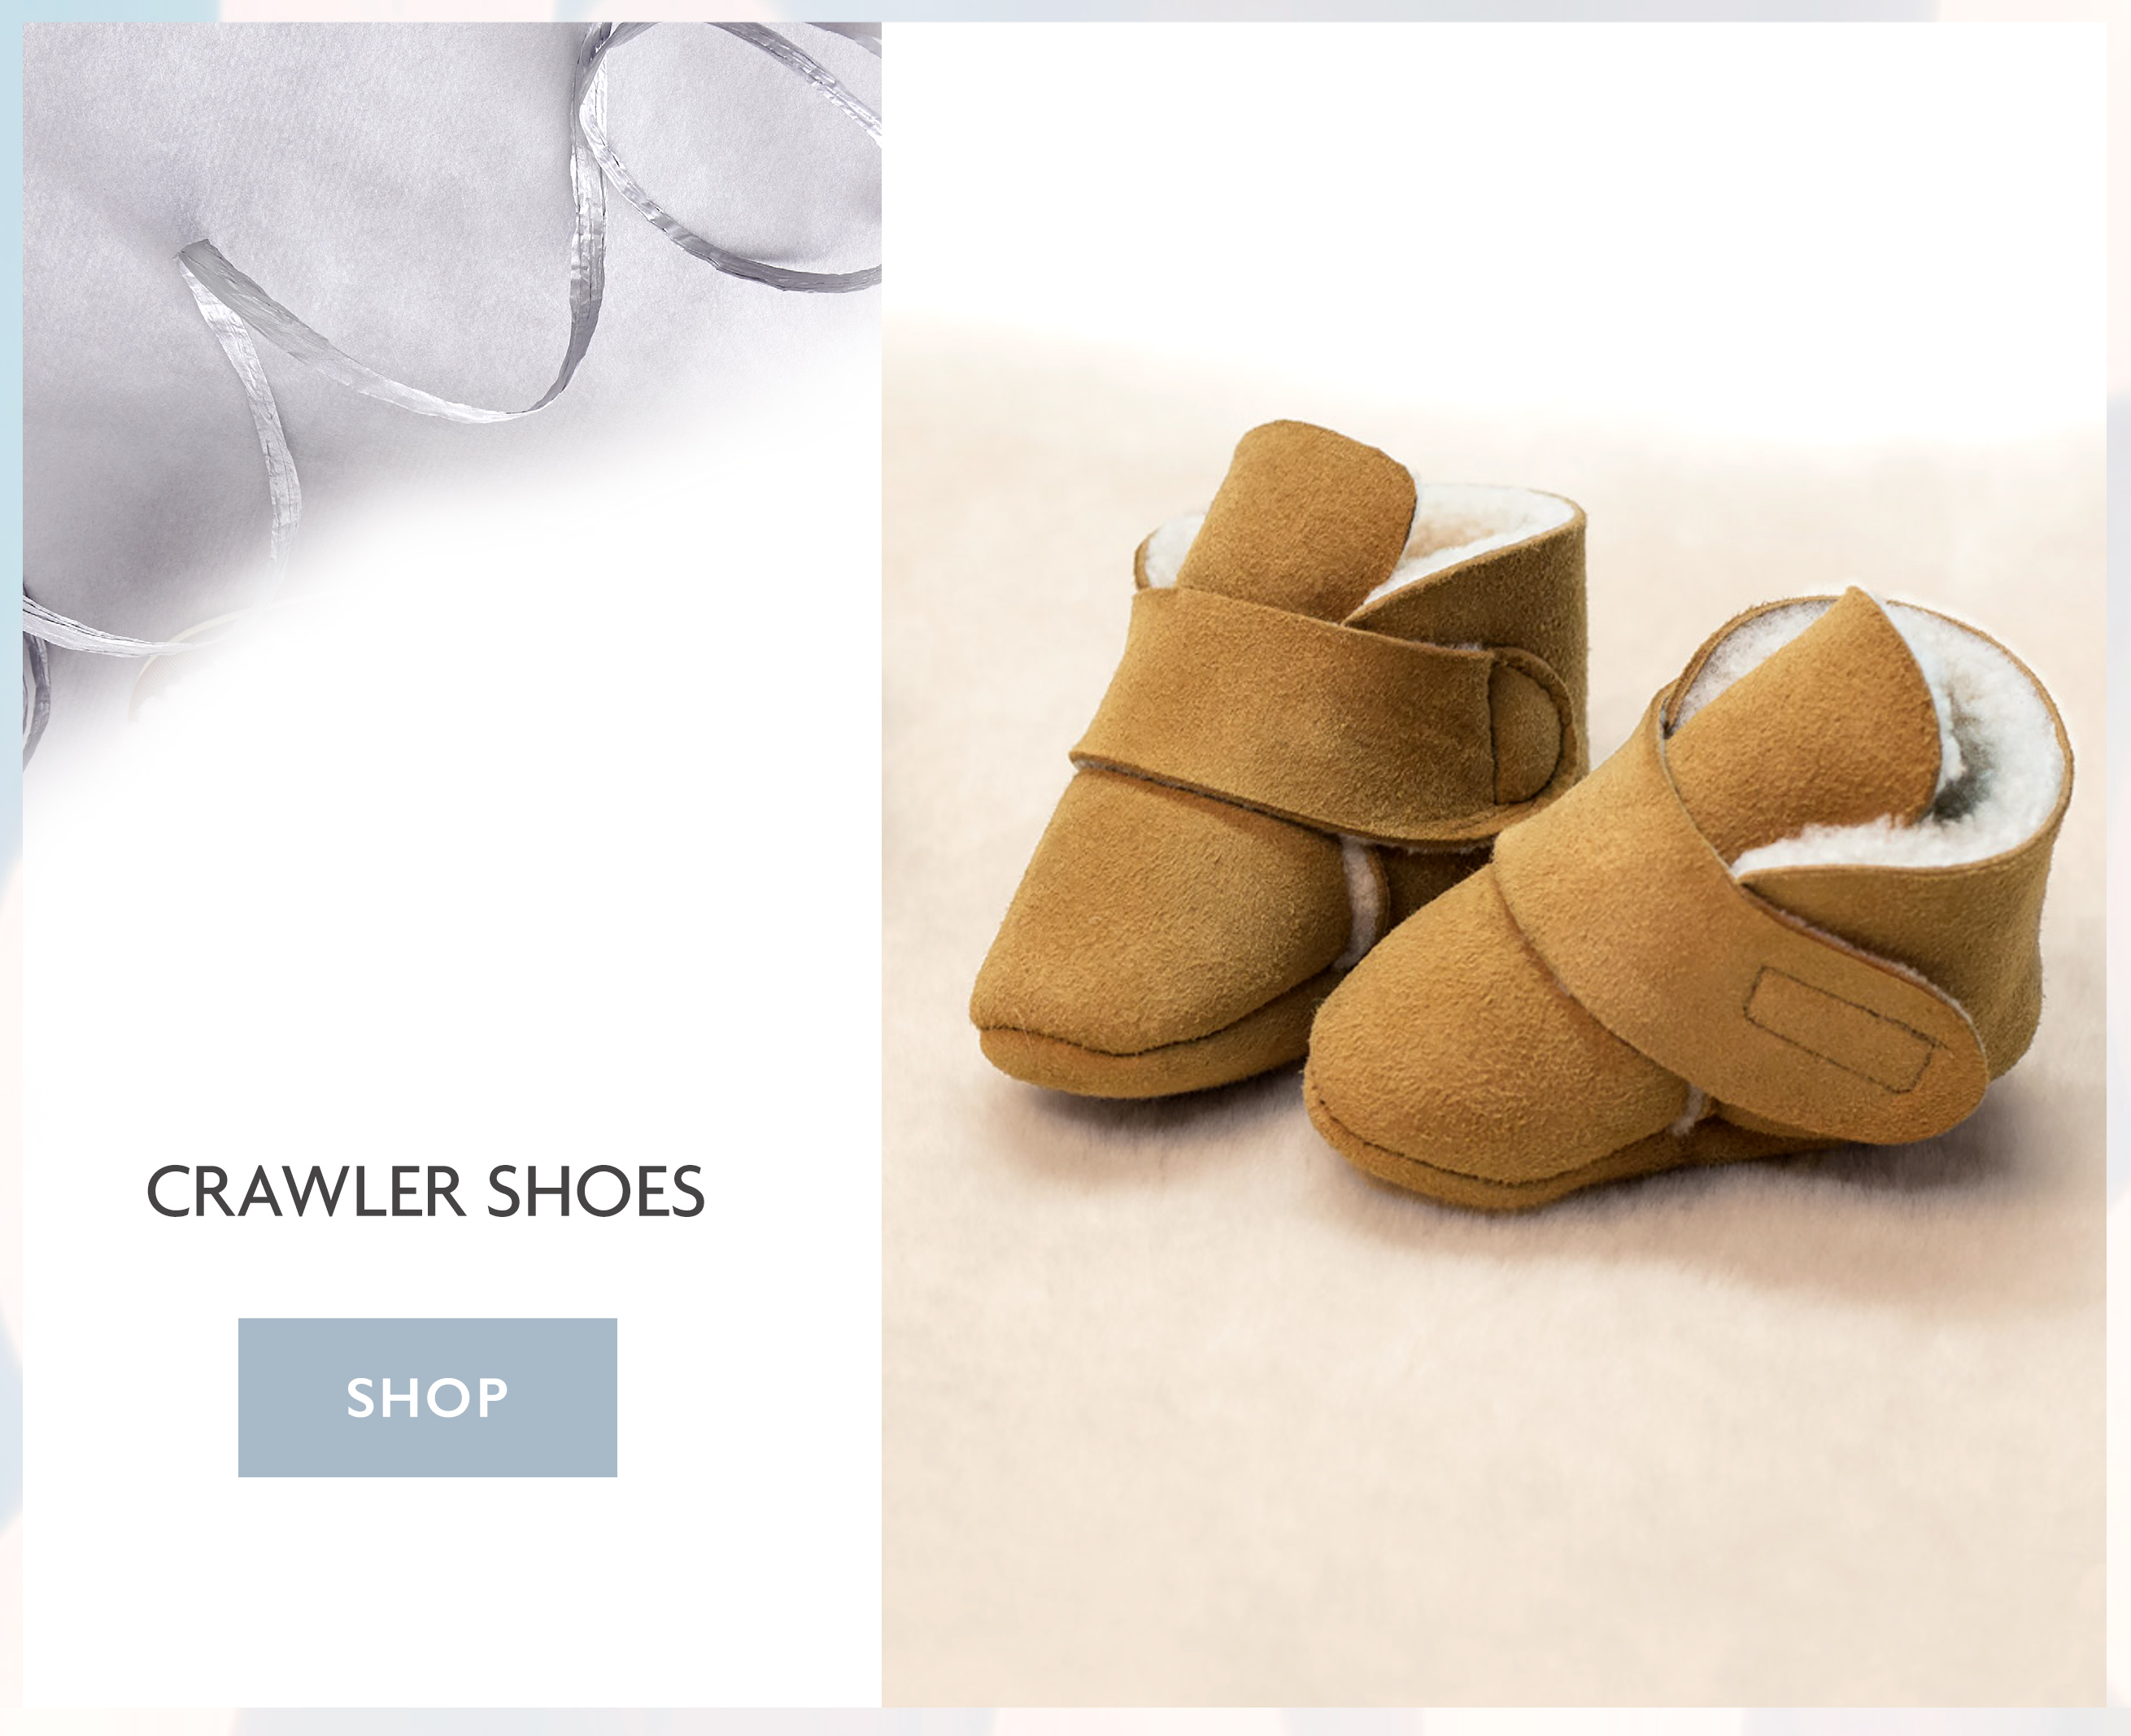 Crawler Shoes